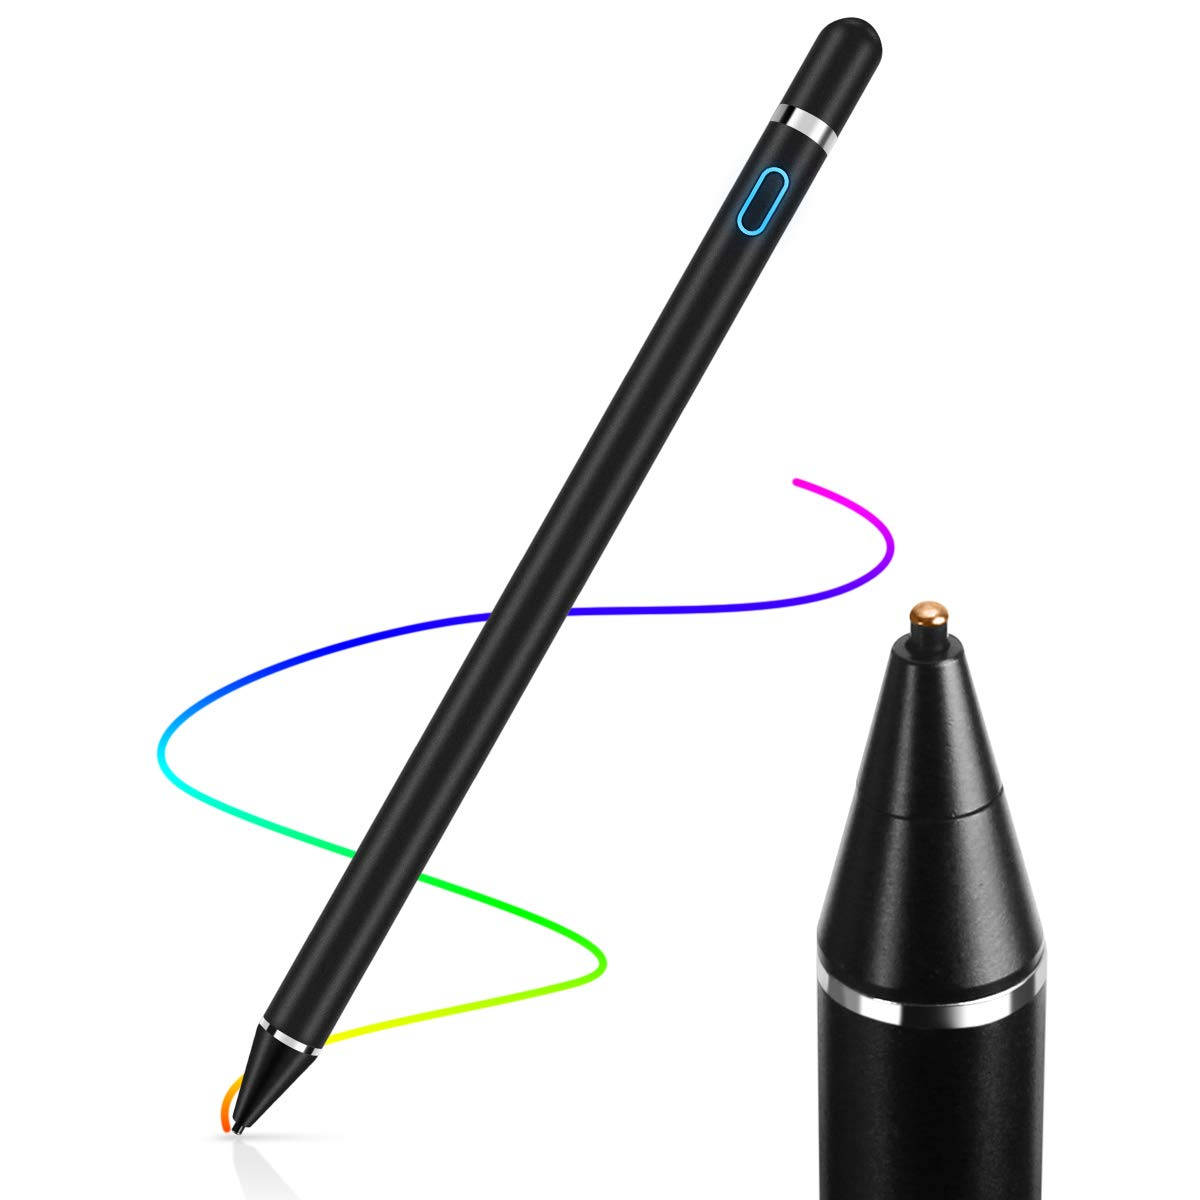 AICase Stylus Pens for Touch Screens, 1.45mm High Precision and Sensitivity Point IPad Pencil Fine Point Active Smart Digital Pen for Tablet Work at iOS and Android Touch Screen (Black)